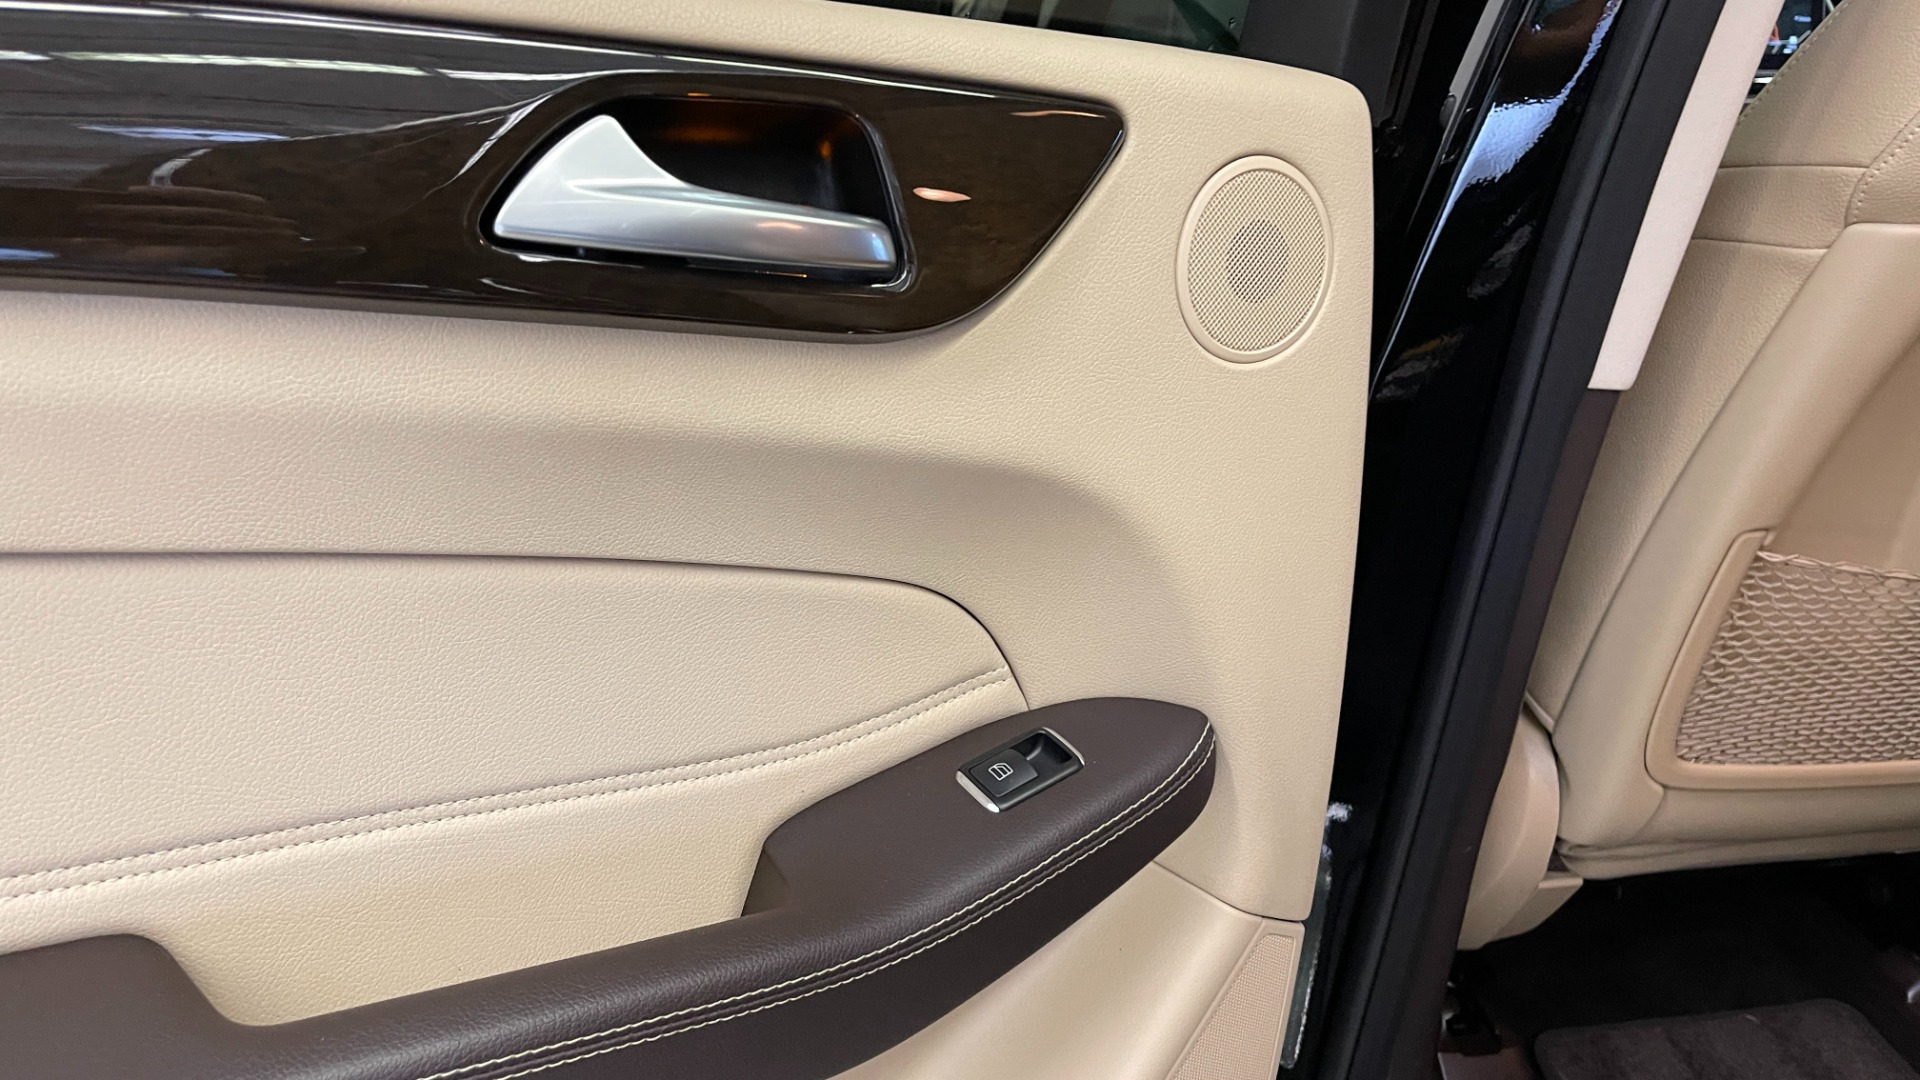 Used 2018 Mercedes-Benz GLE 350 4MATIC PREMIUM / NAV / PARK PILOT / BSA / H/K SND / SURROUND VIEW for sale $40,995 at Formula Imports in Charlotte NC 28227 46